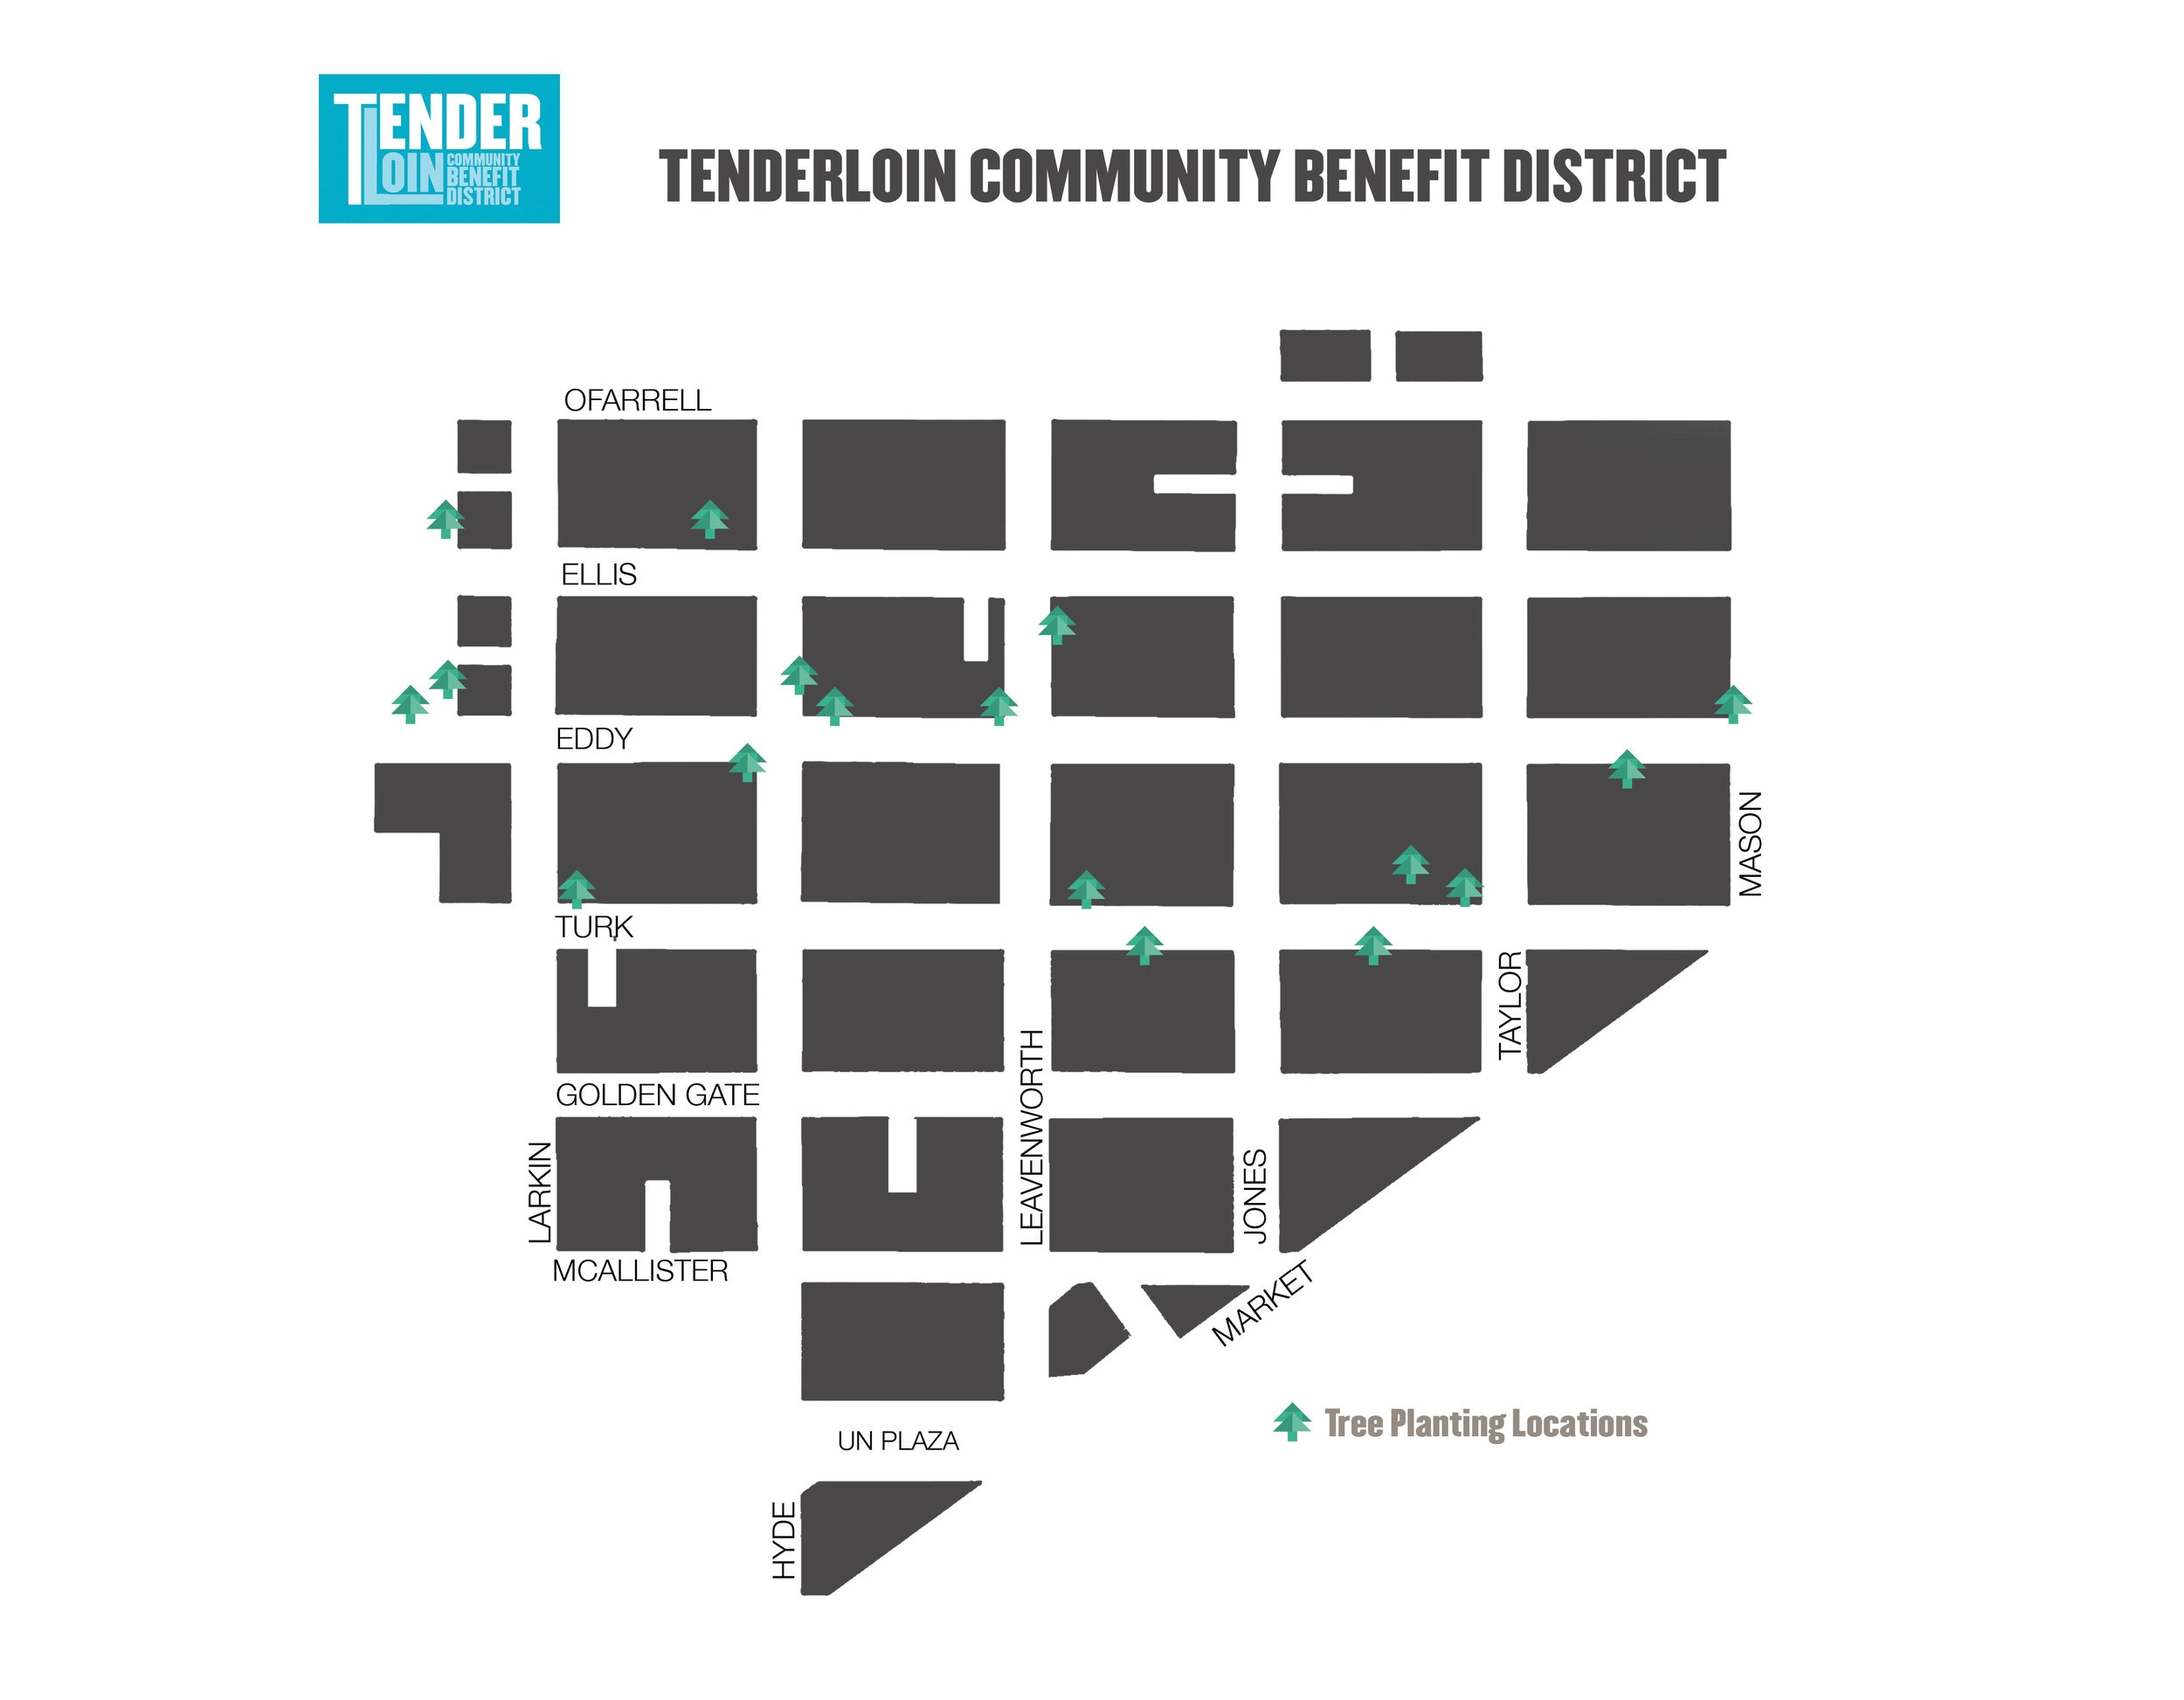 Tenderloin-tree-locations.jpg